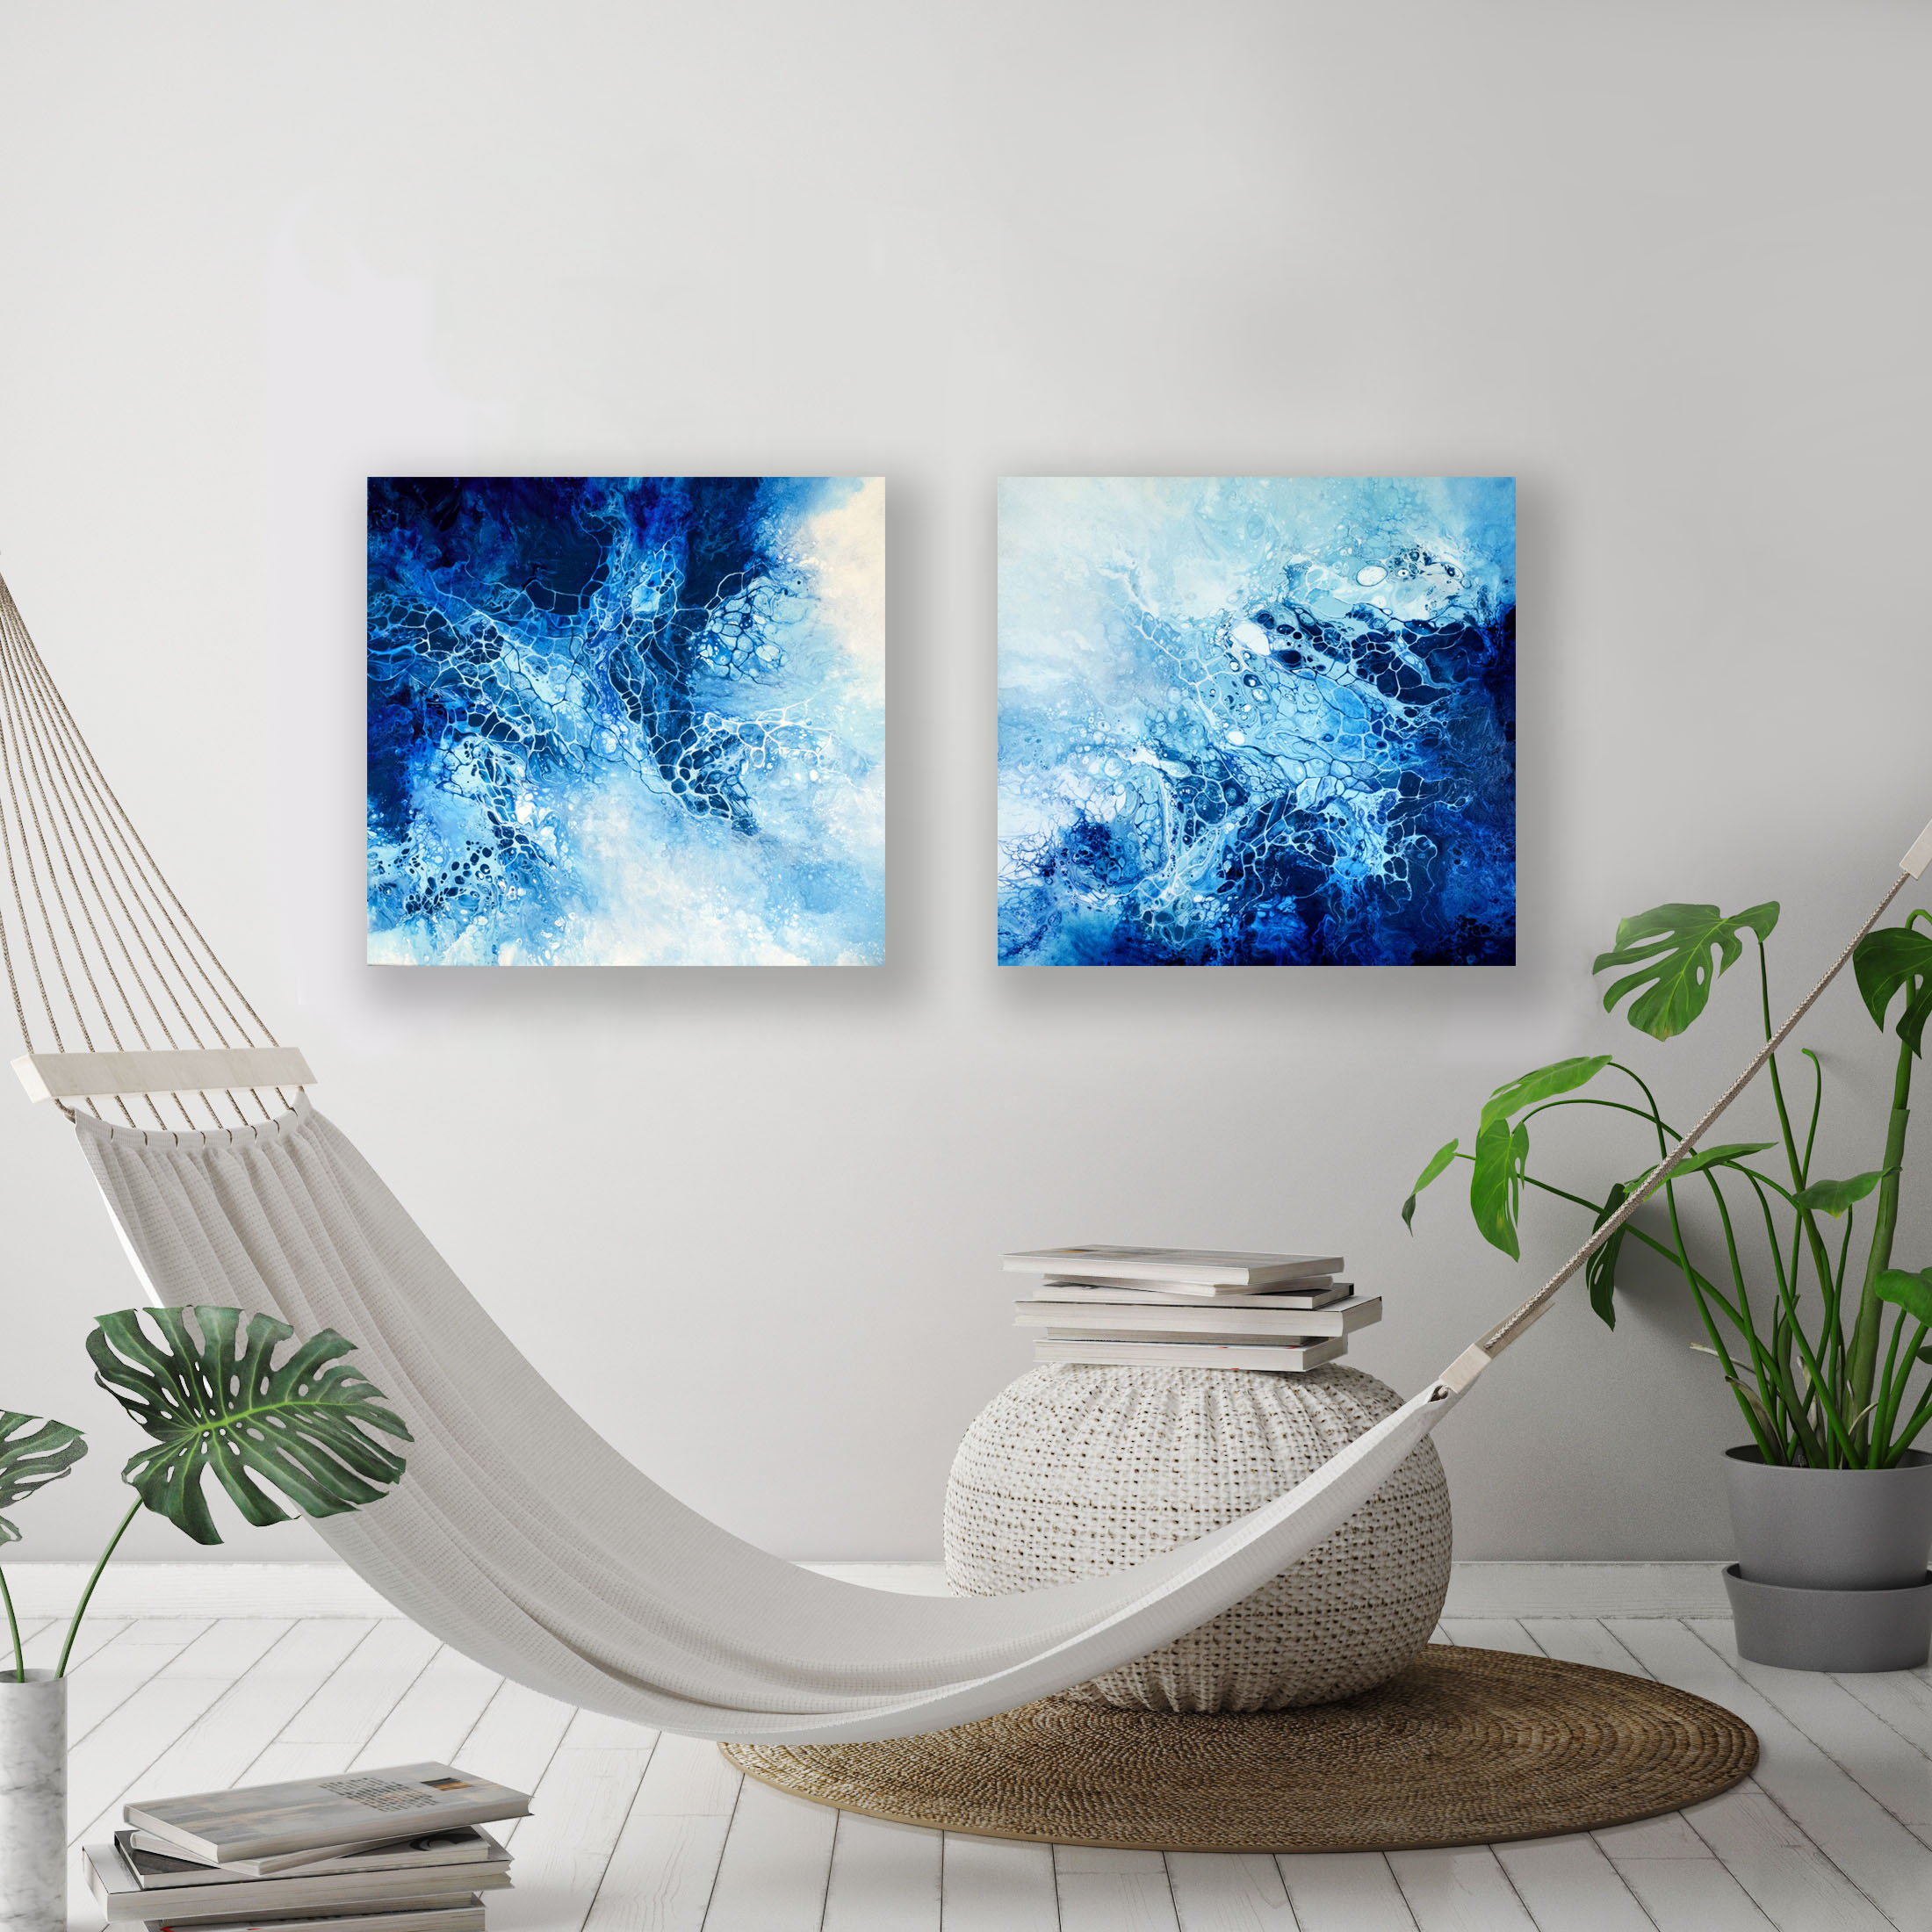 Oceans Between Us I & II/ 2018/ 24x24x1.25/Fluid Acrylic and Atlantic Ocean Water on Canvas/ Available in the UK/ SOLD